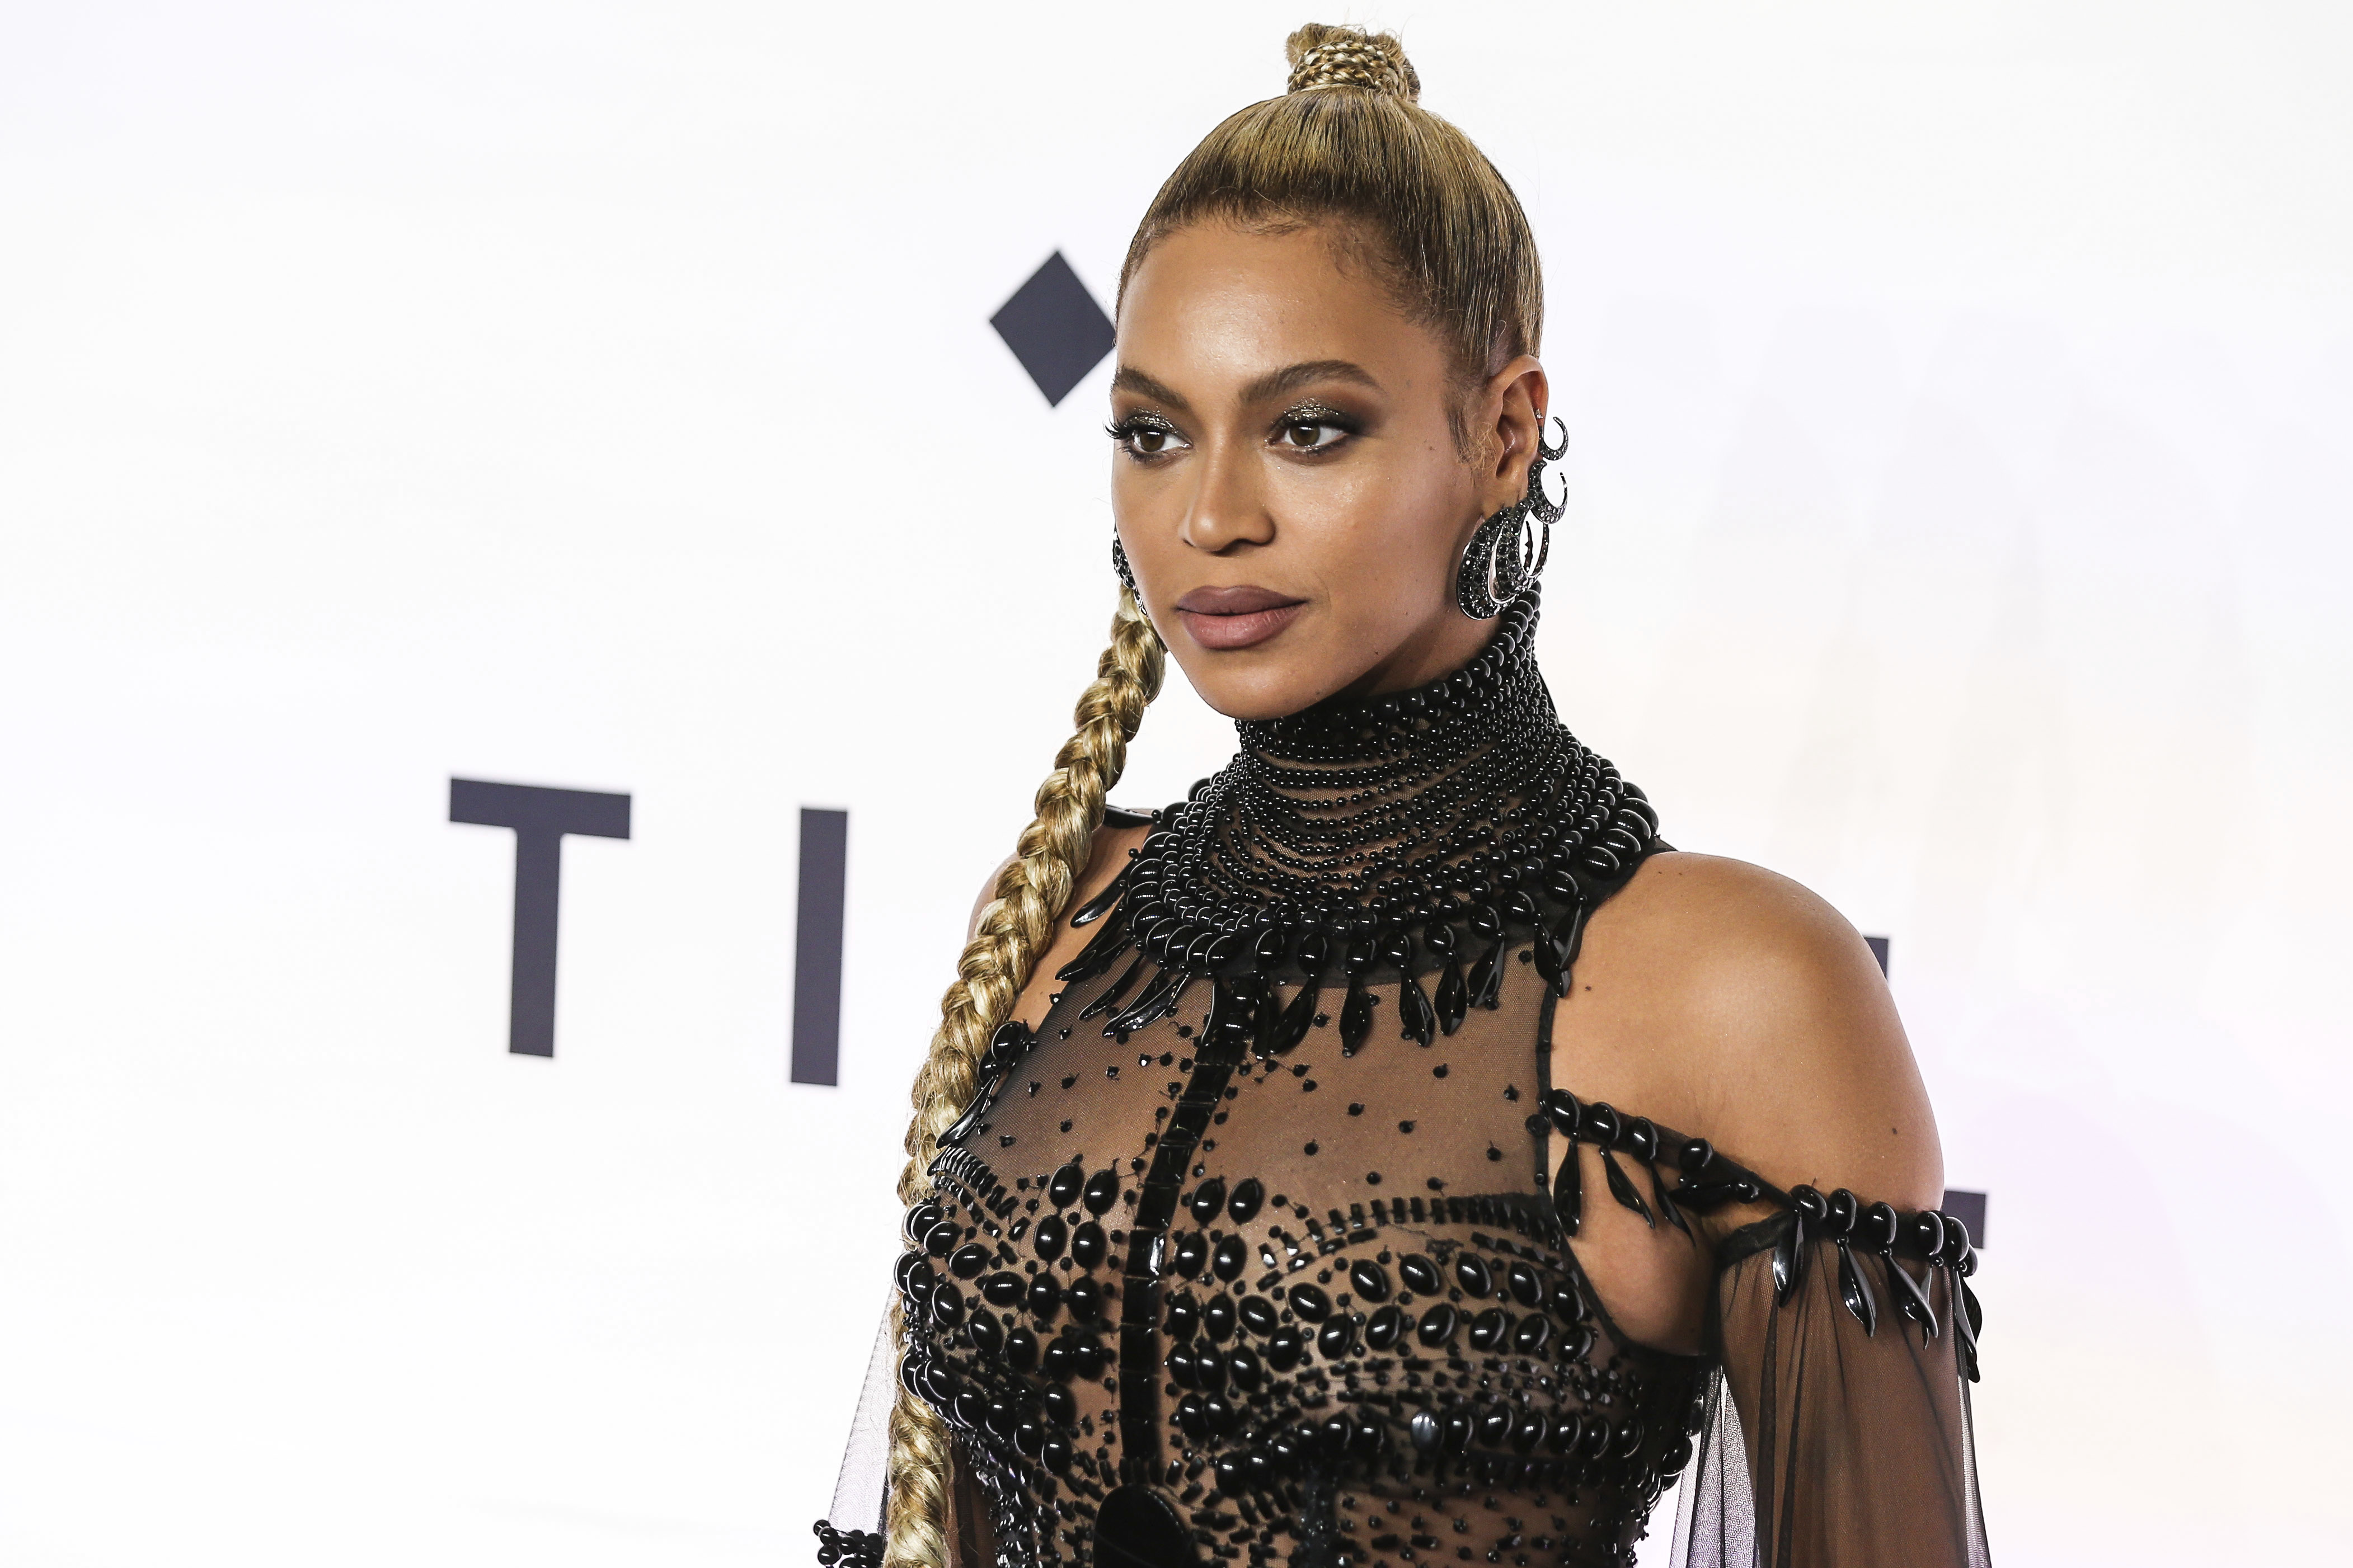 NEW YORK, UNITED STATES - OCTOBER 15:  Beyonce attends TIDAL X: 1015 at Barclays Center on October 15, 2016 in New York, United States. (Photo by William Volcov/Brazil Photo Press/LatinContent/Getty Images)